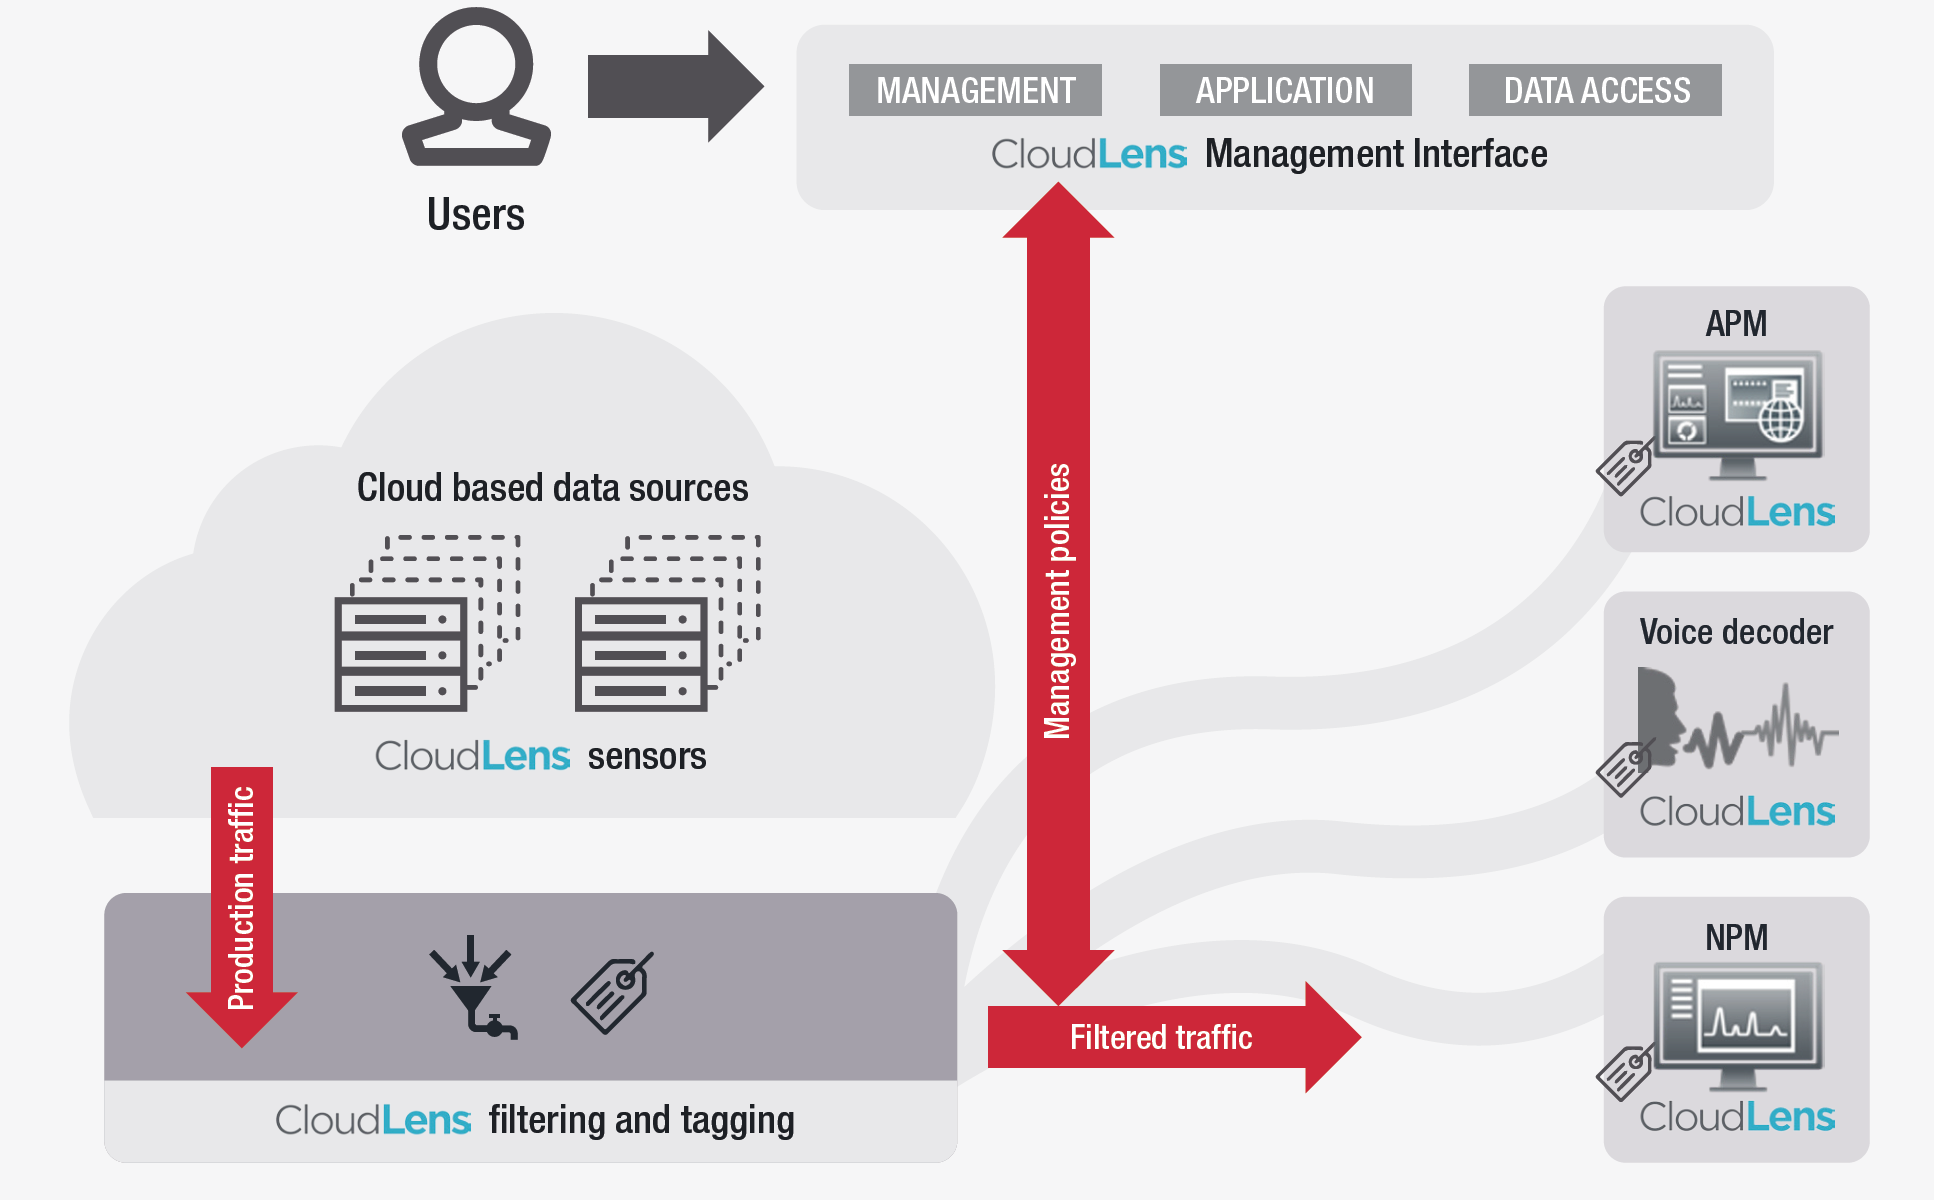 Figure 1. Cloud-based management interface controls data access, filtering, and delivery